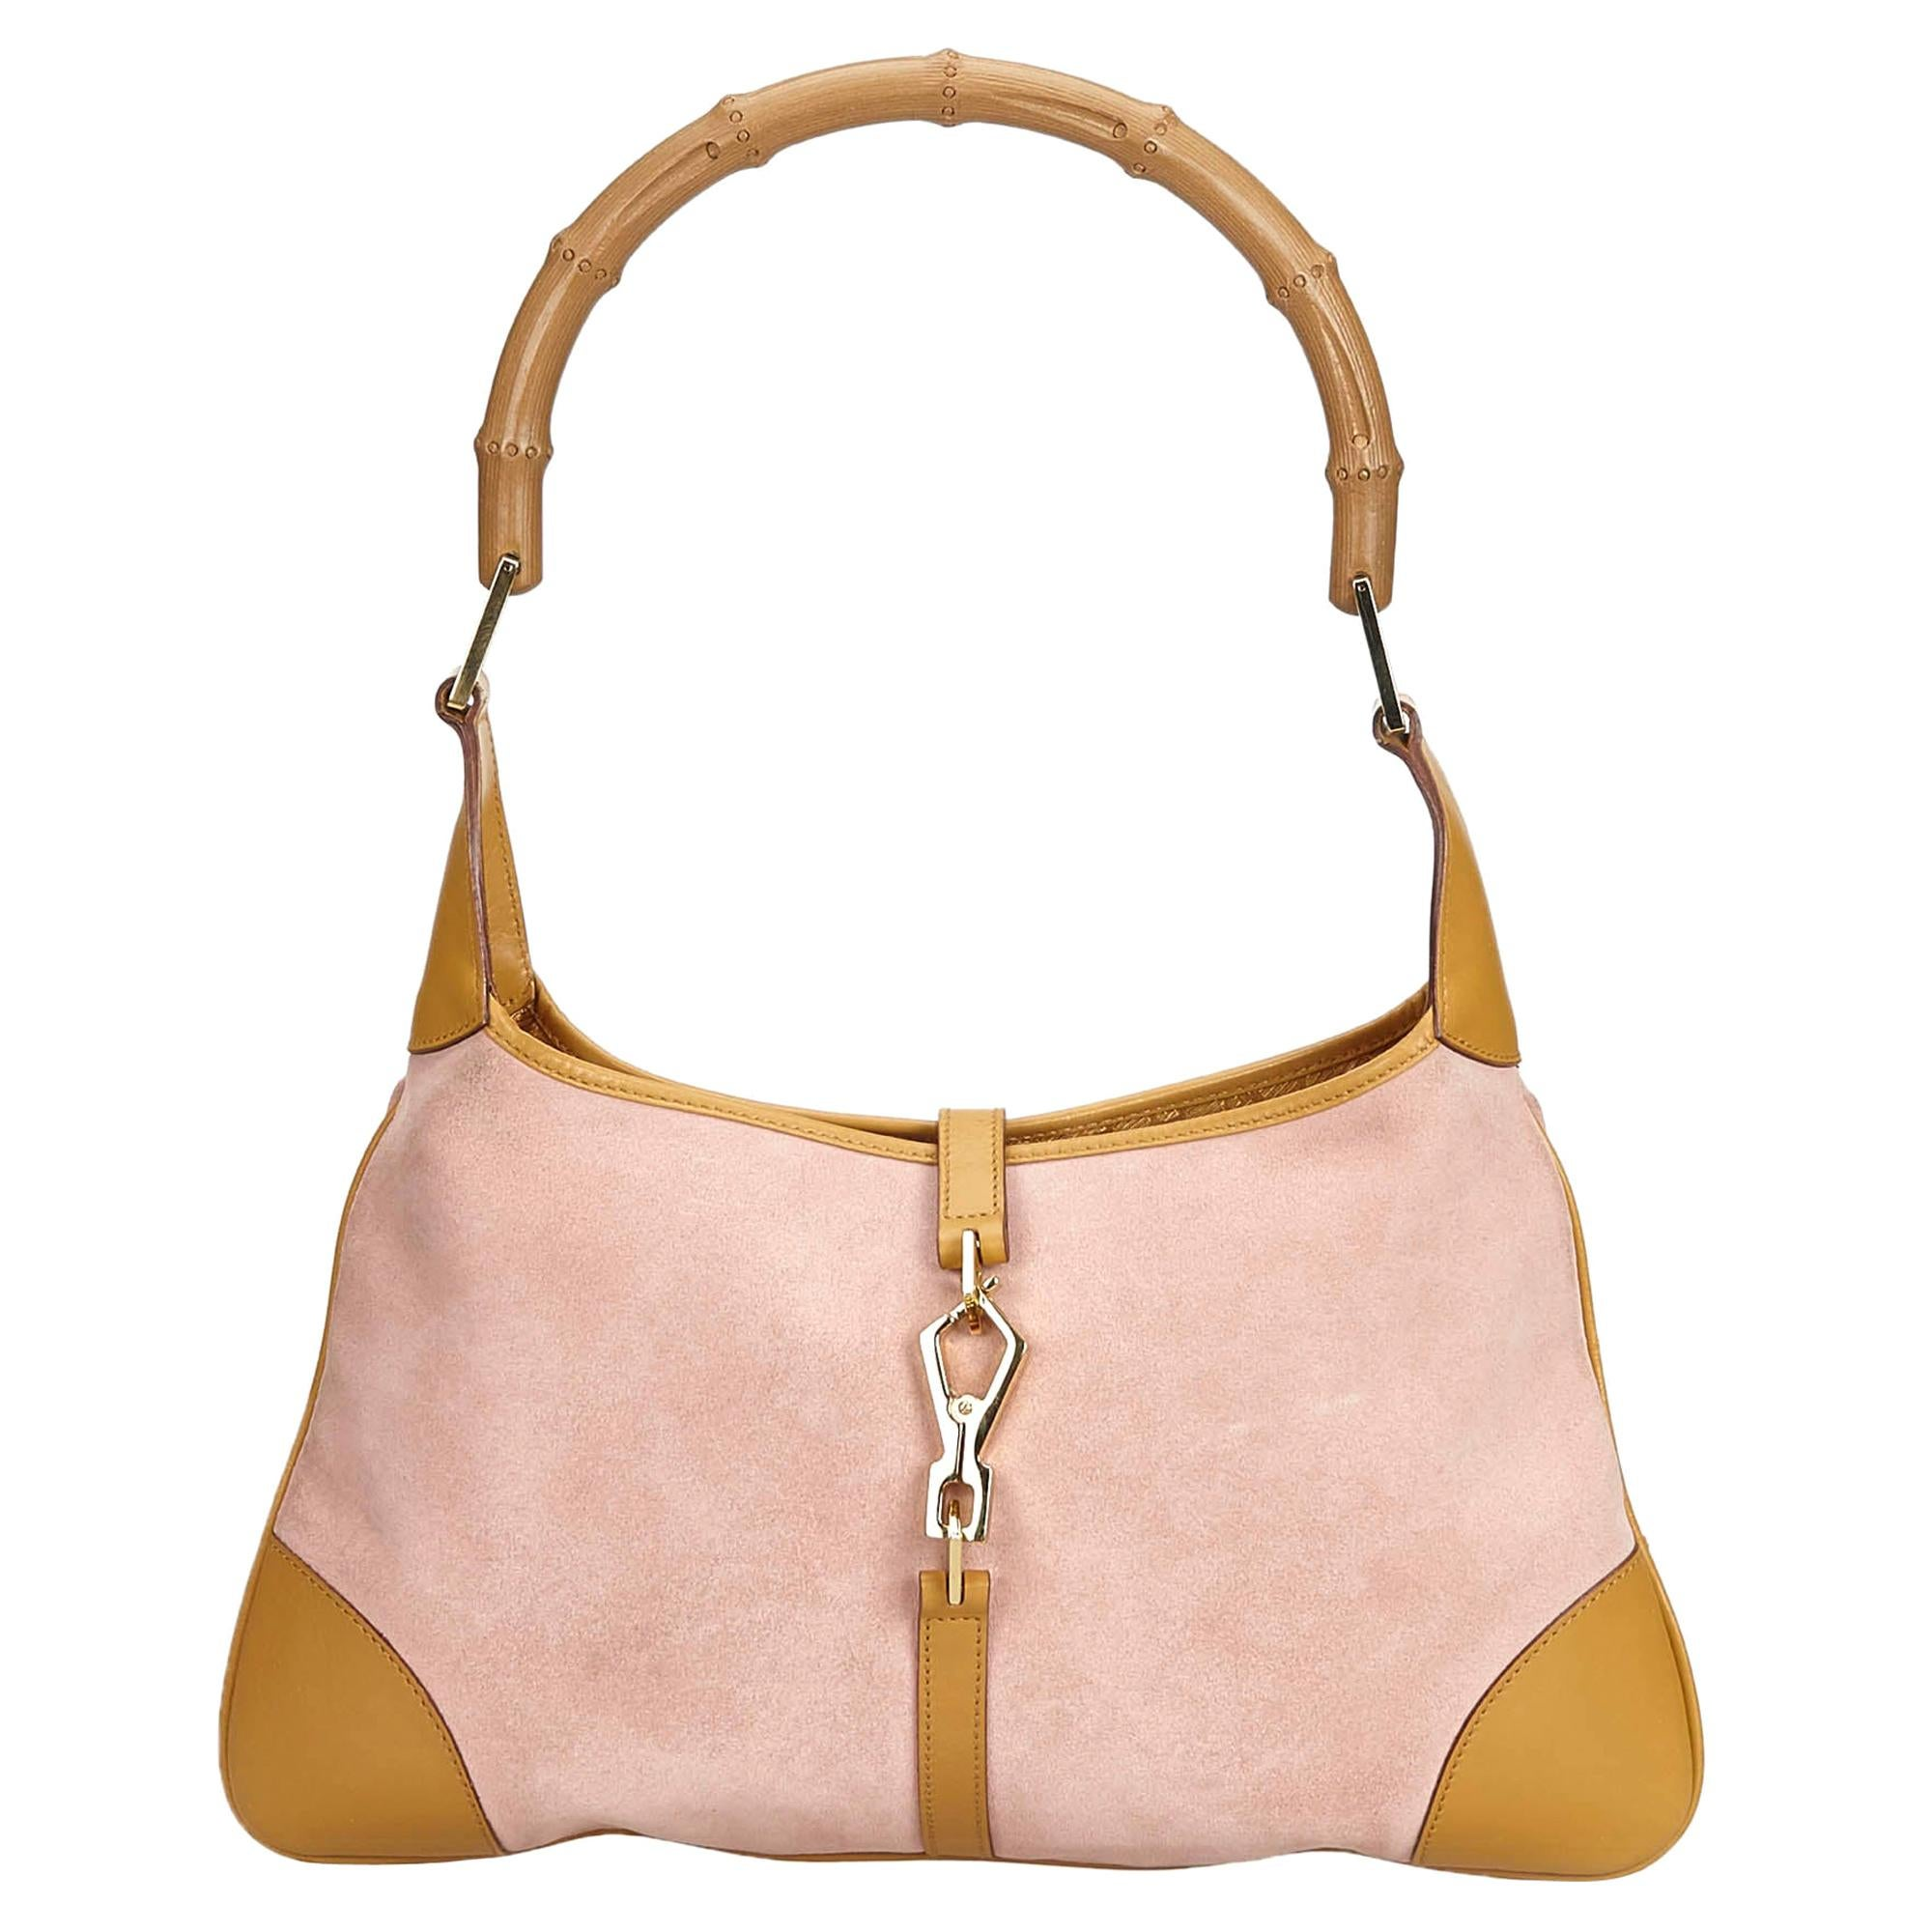 39e84a3d42dc40 Vintage Gucci Handbags and Purses - 2,053 For Sale at 1stdibs